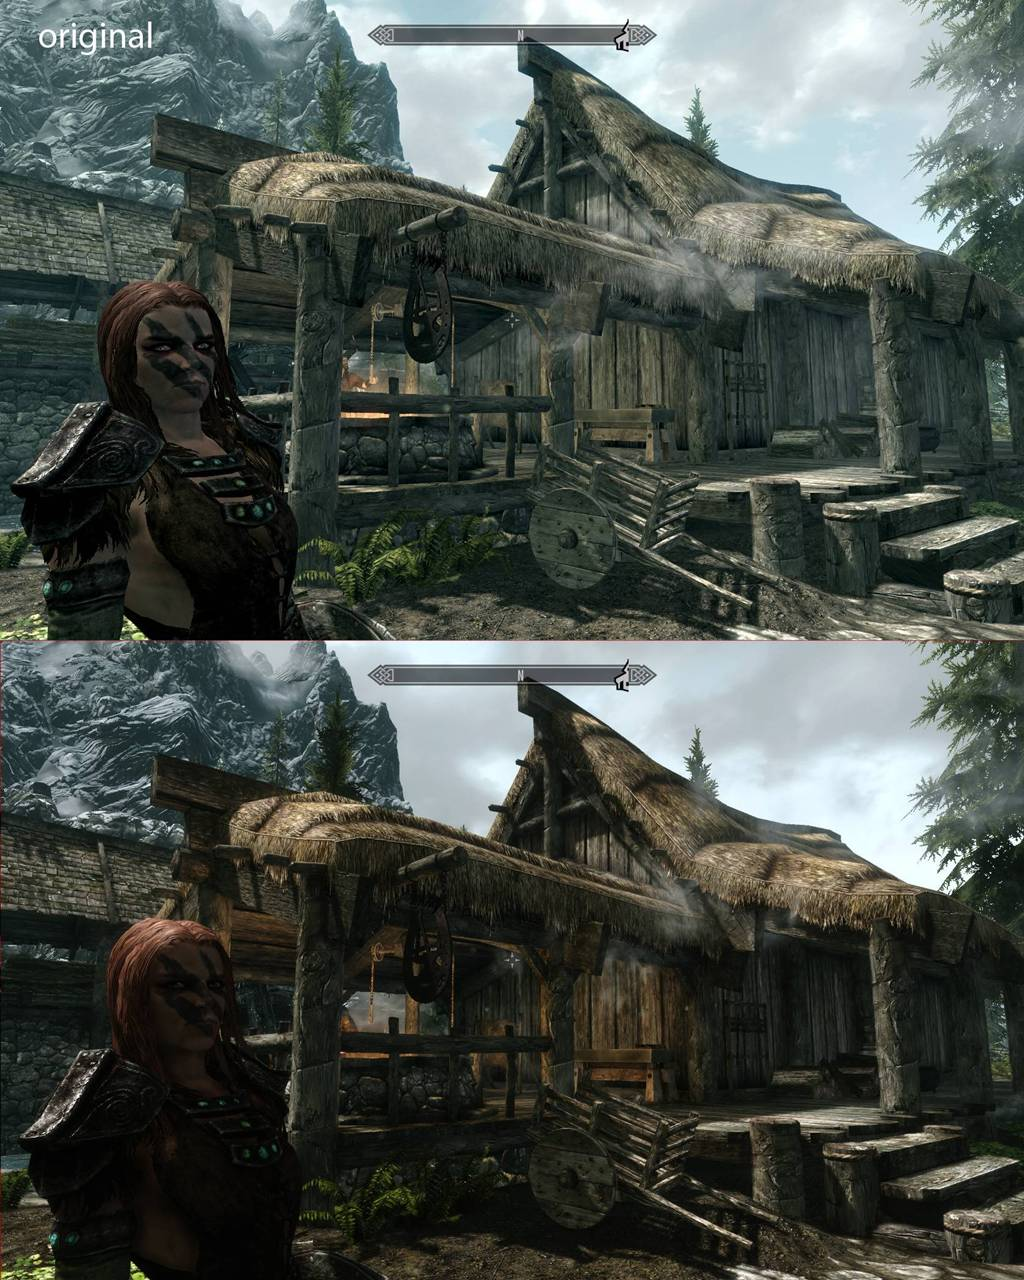 6 & Latest Lighting and Realistic Colours mod for Skyrim Transforms the ...